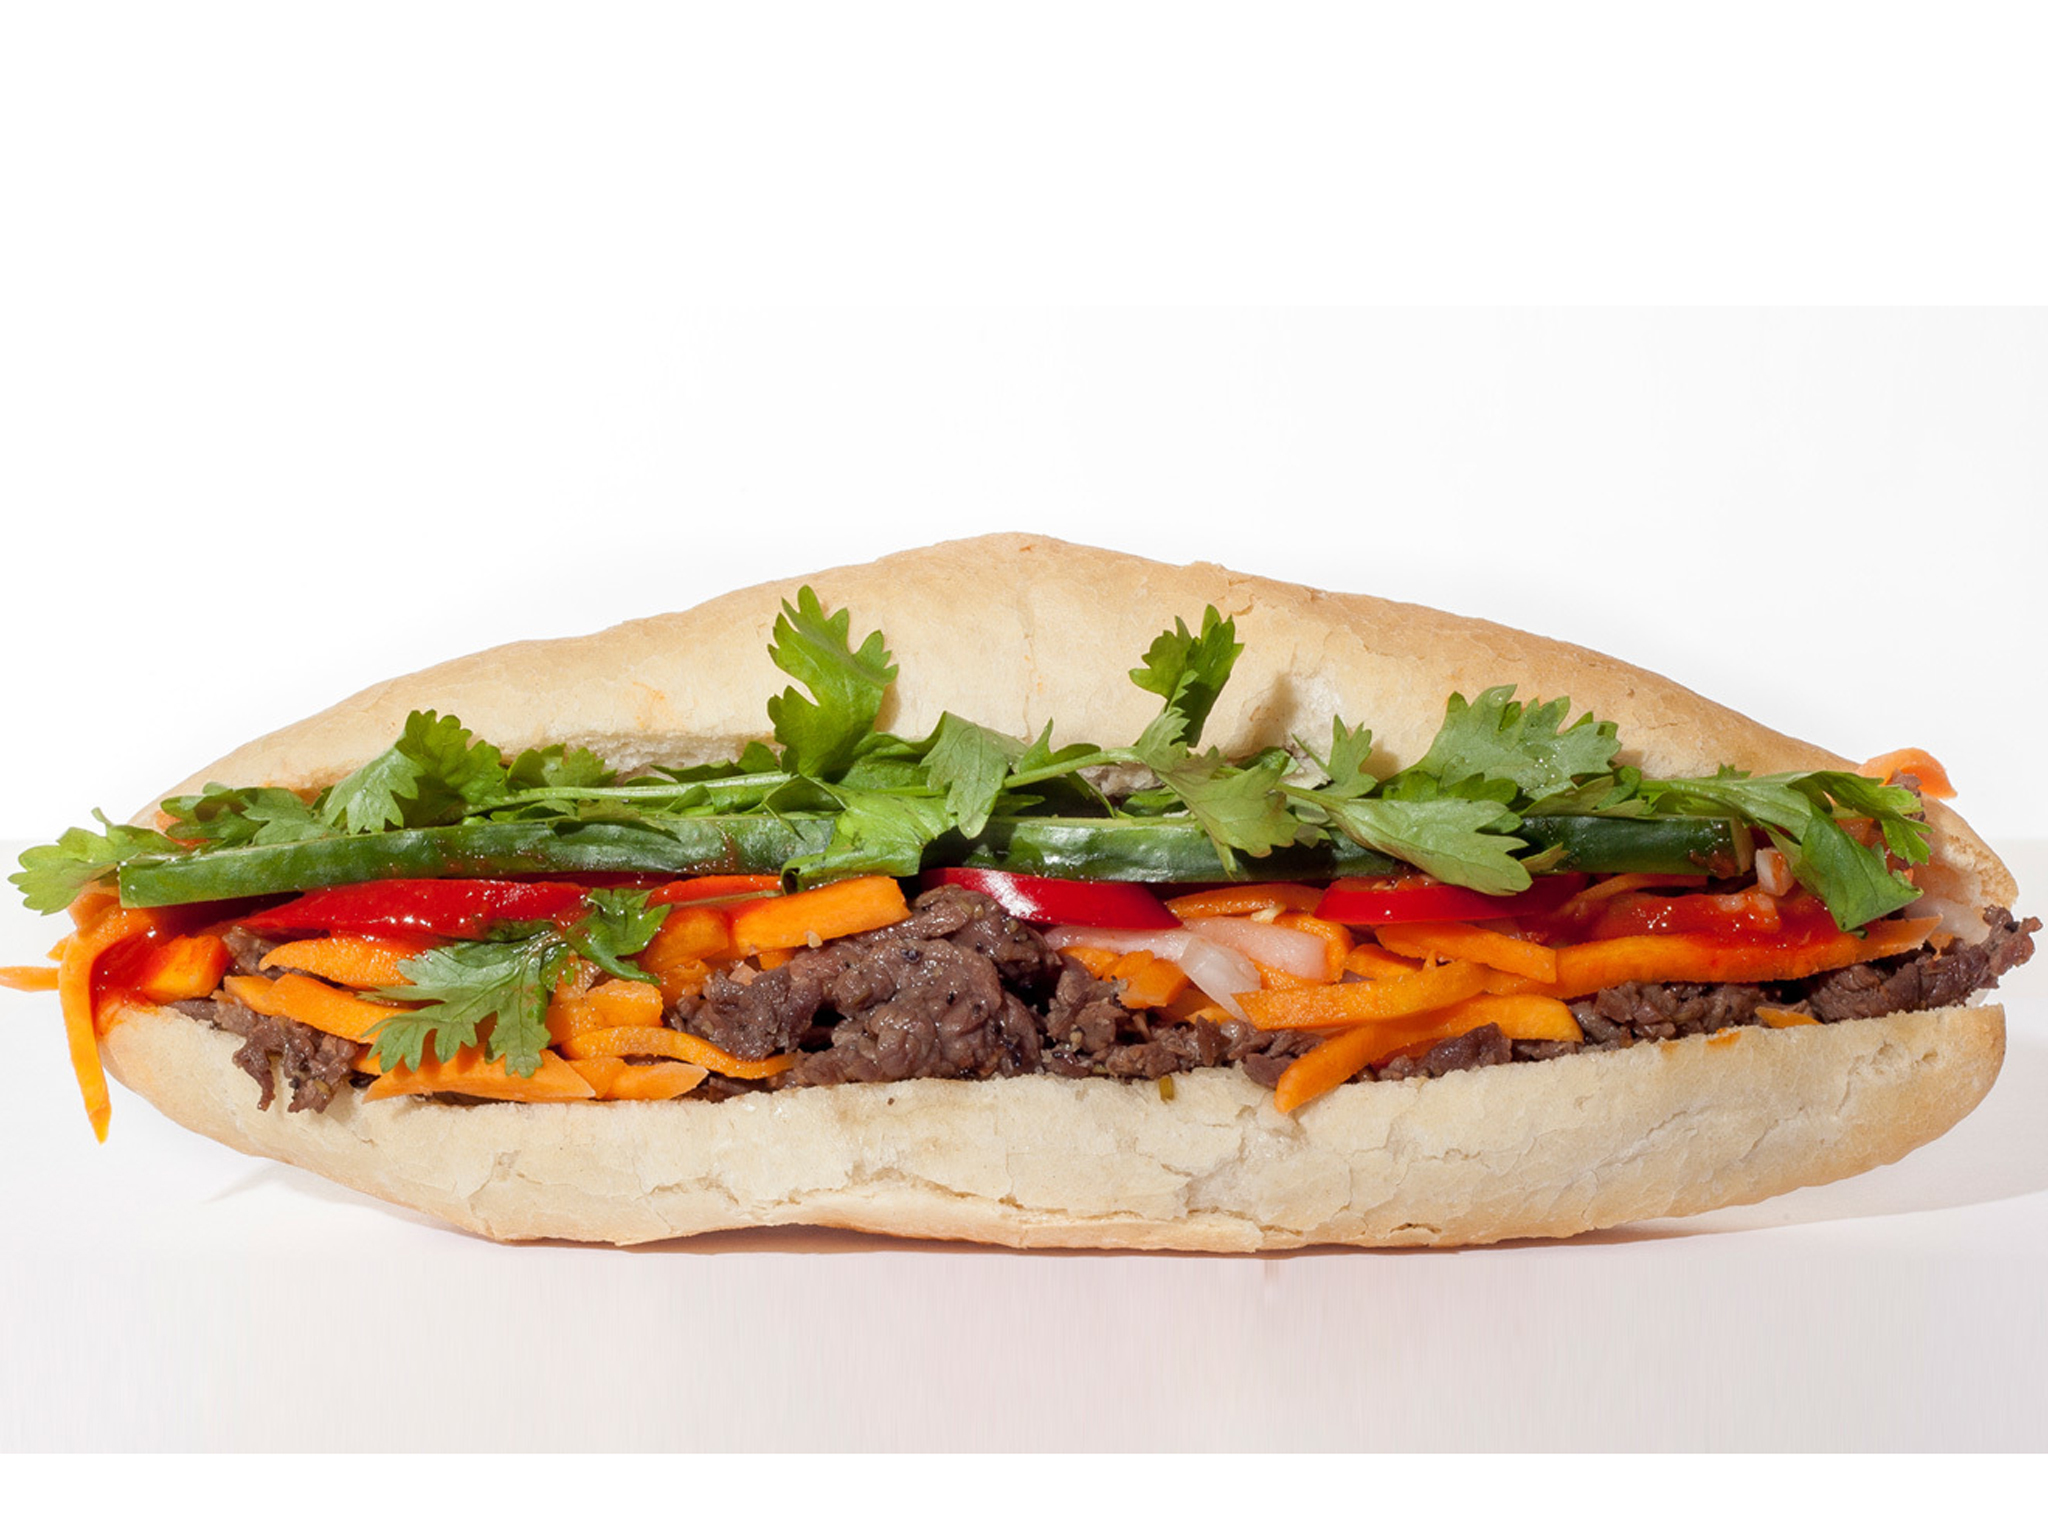 City caphe banh mi